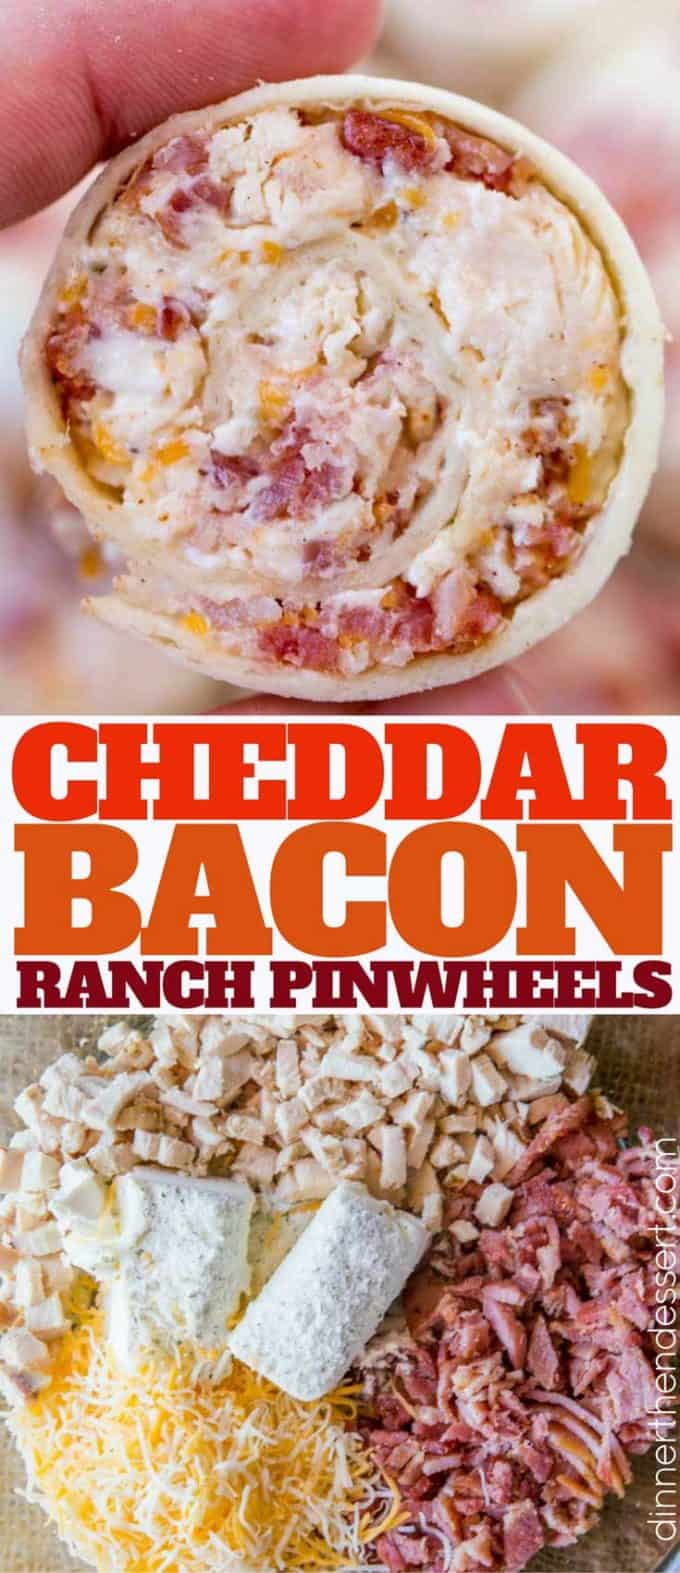 Cheddar Bacon Ranch Pinwheels are the perfect afternoon snack! You'll love them!